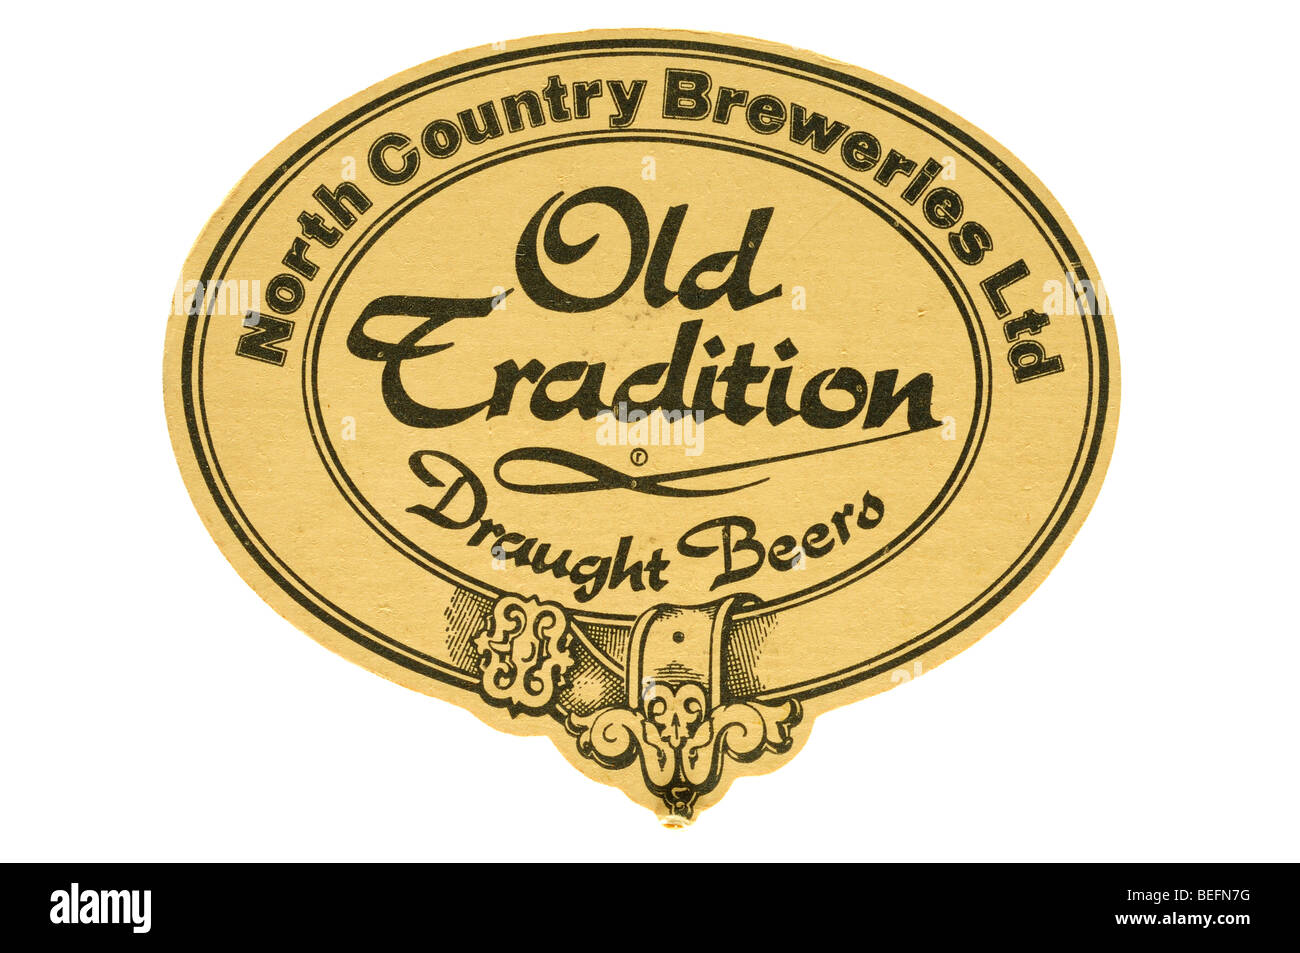 north country breweries old tradition draught beers beer mat - Stock Image